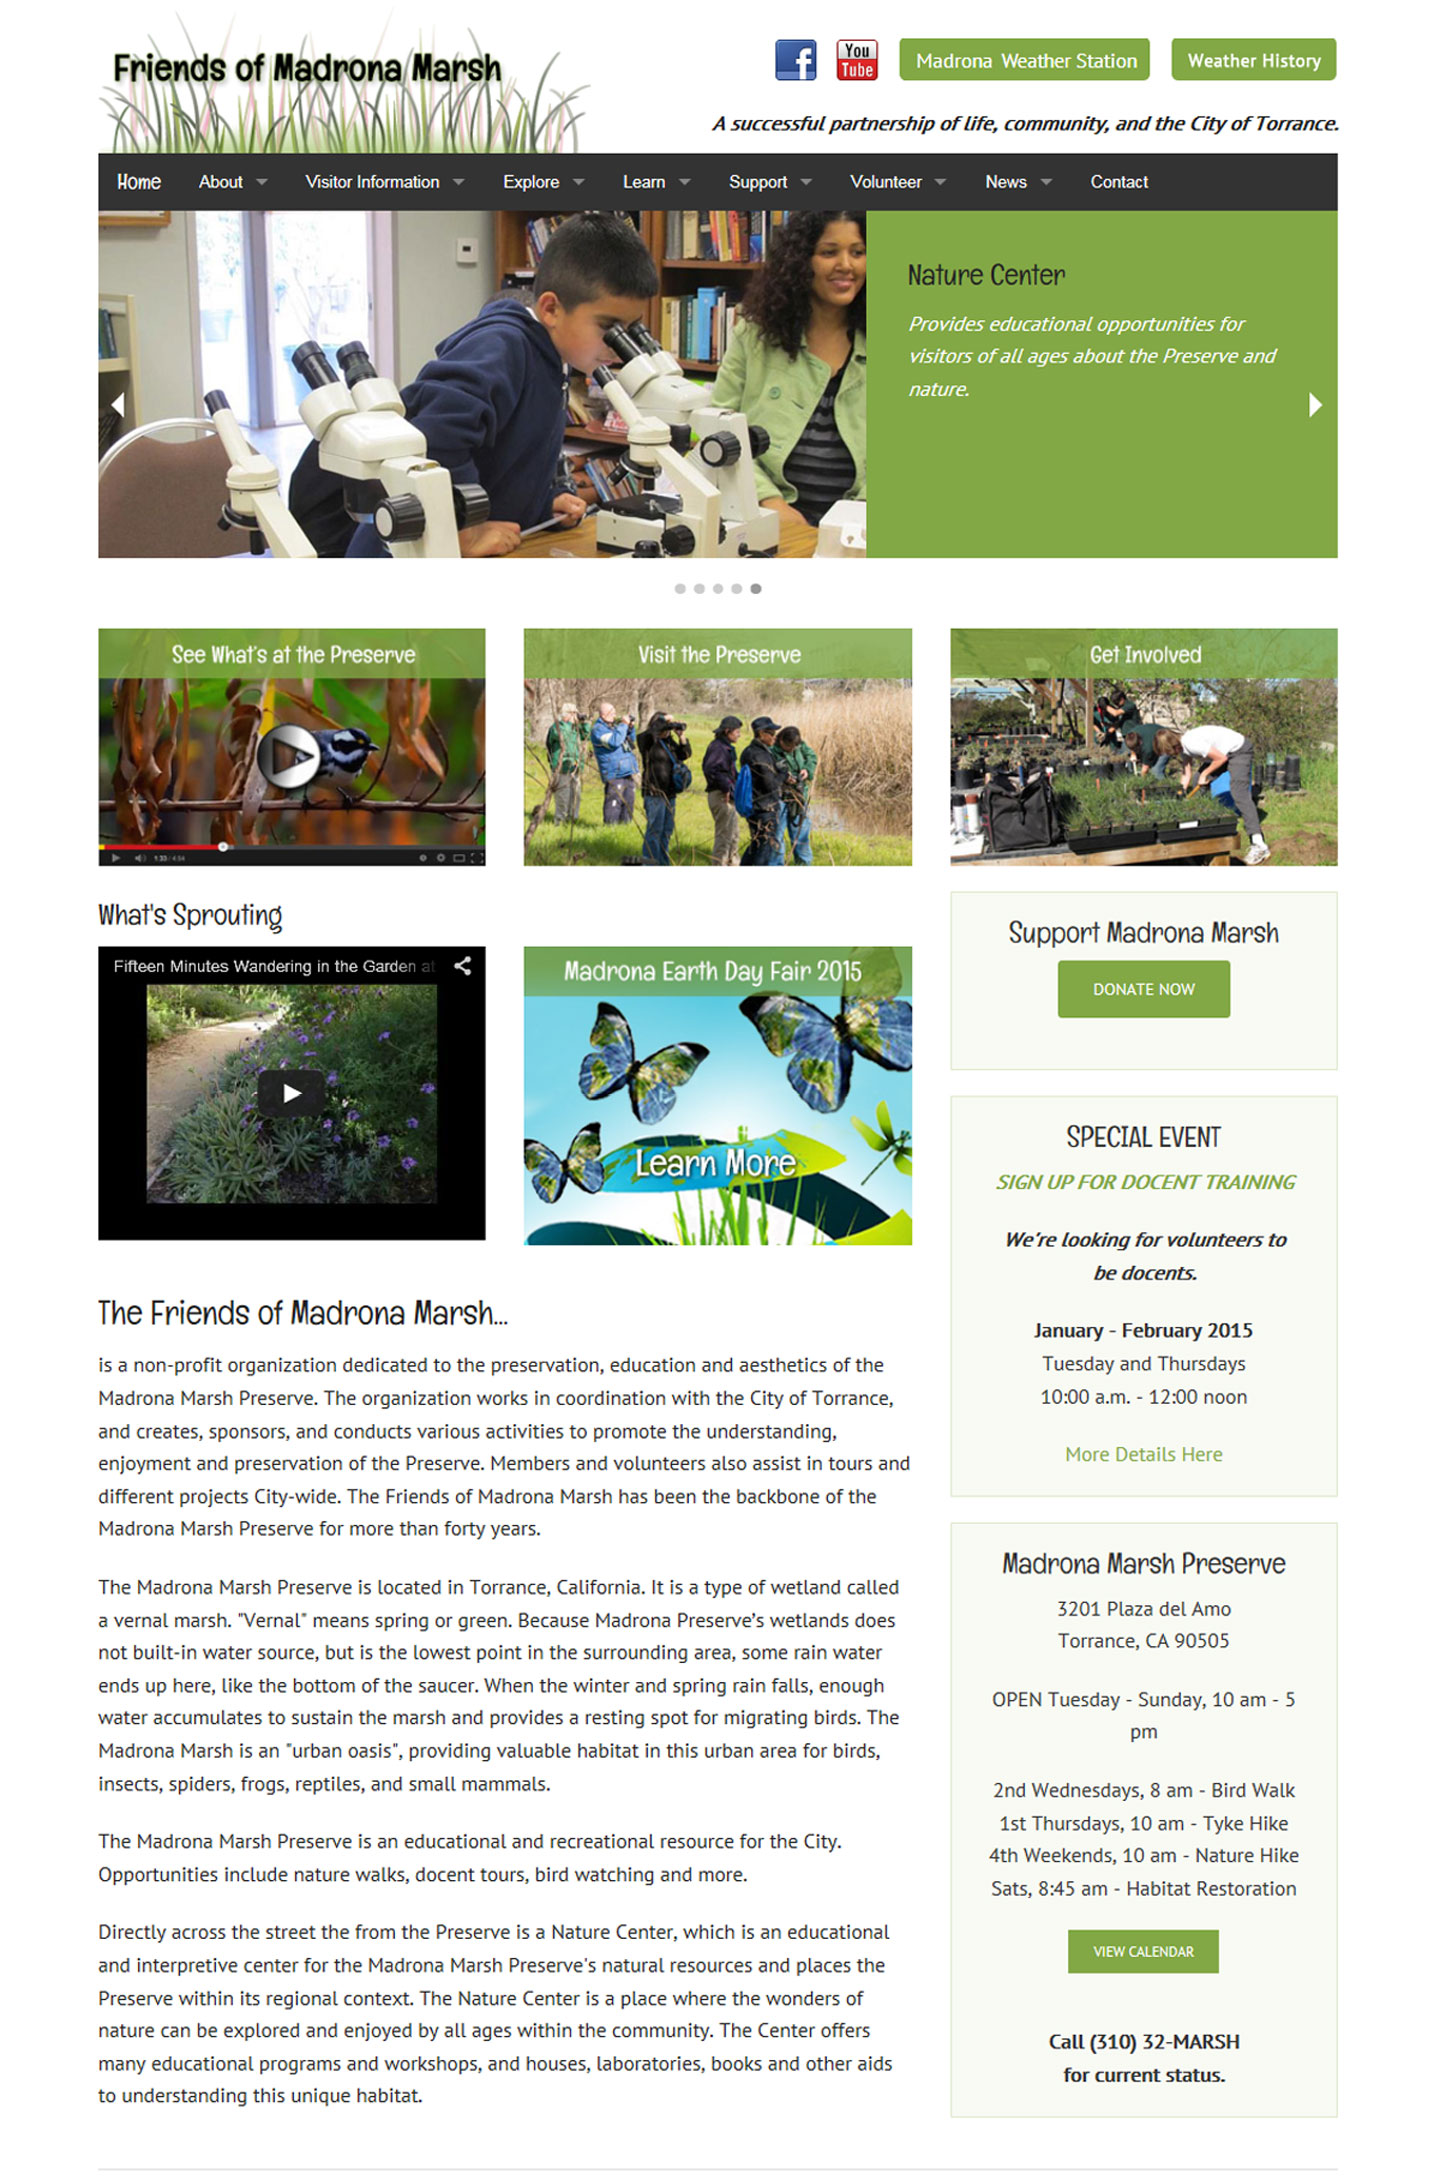 website design and build for Friends of Madrona Marsh in Torrance